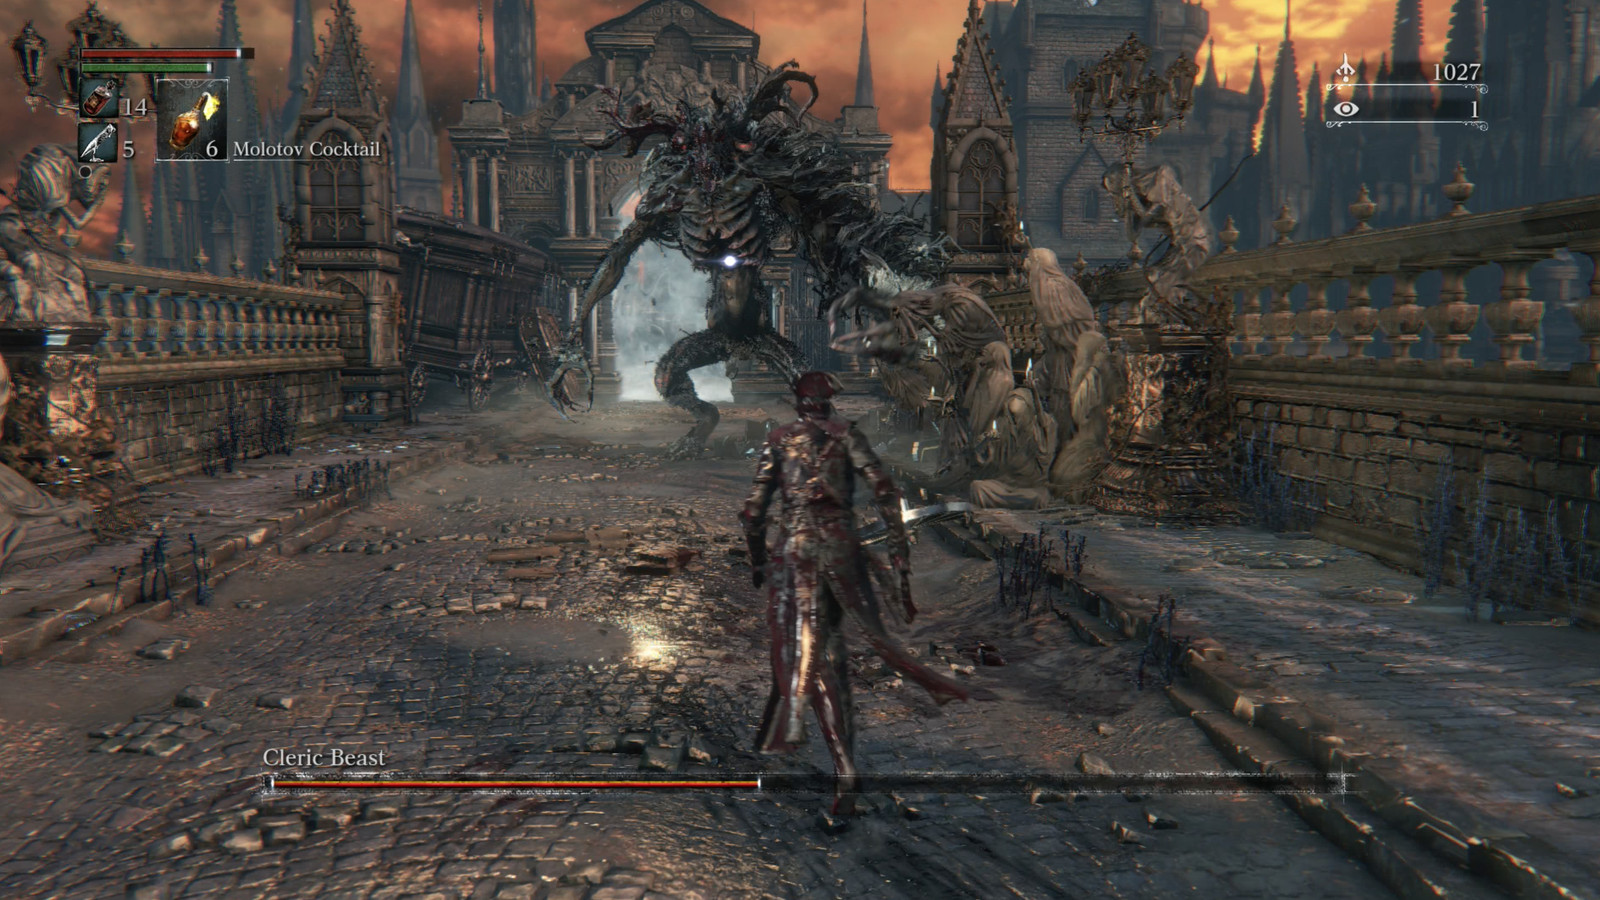 Bit Heroes Guide >> Bloodborne guide: Cleric Beast boss fight - Polygon